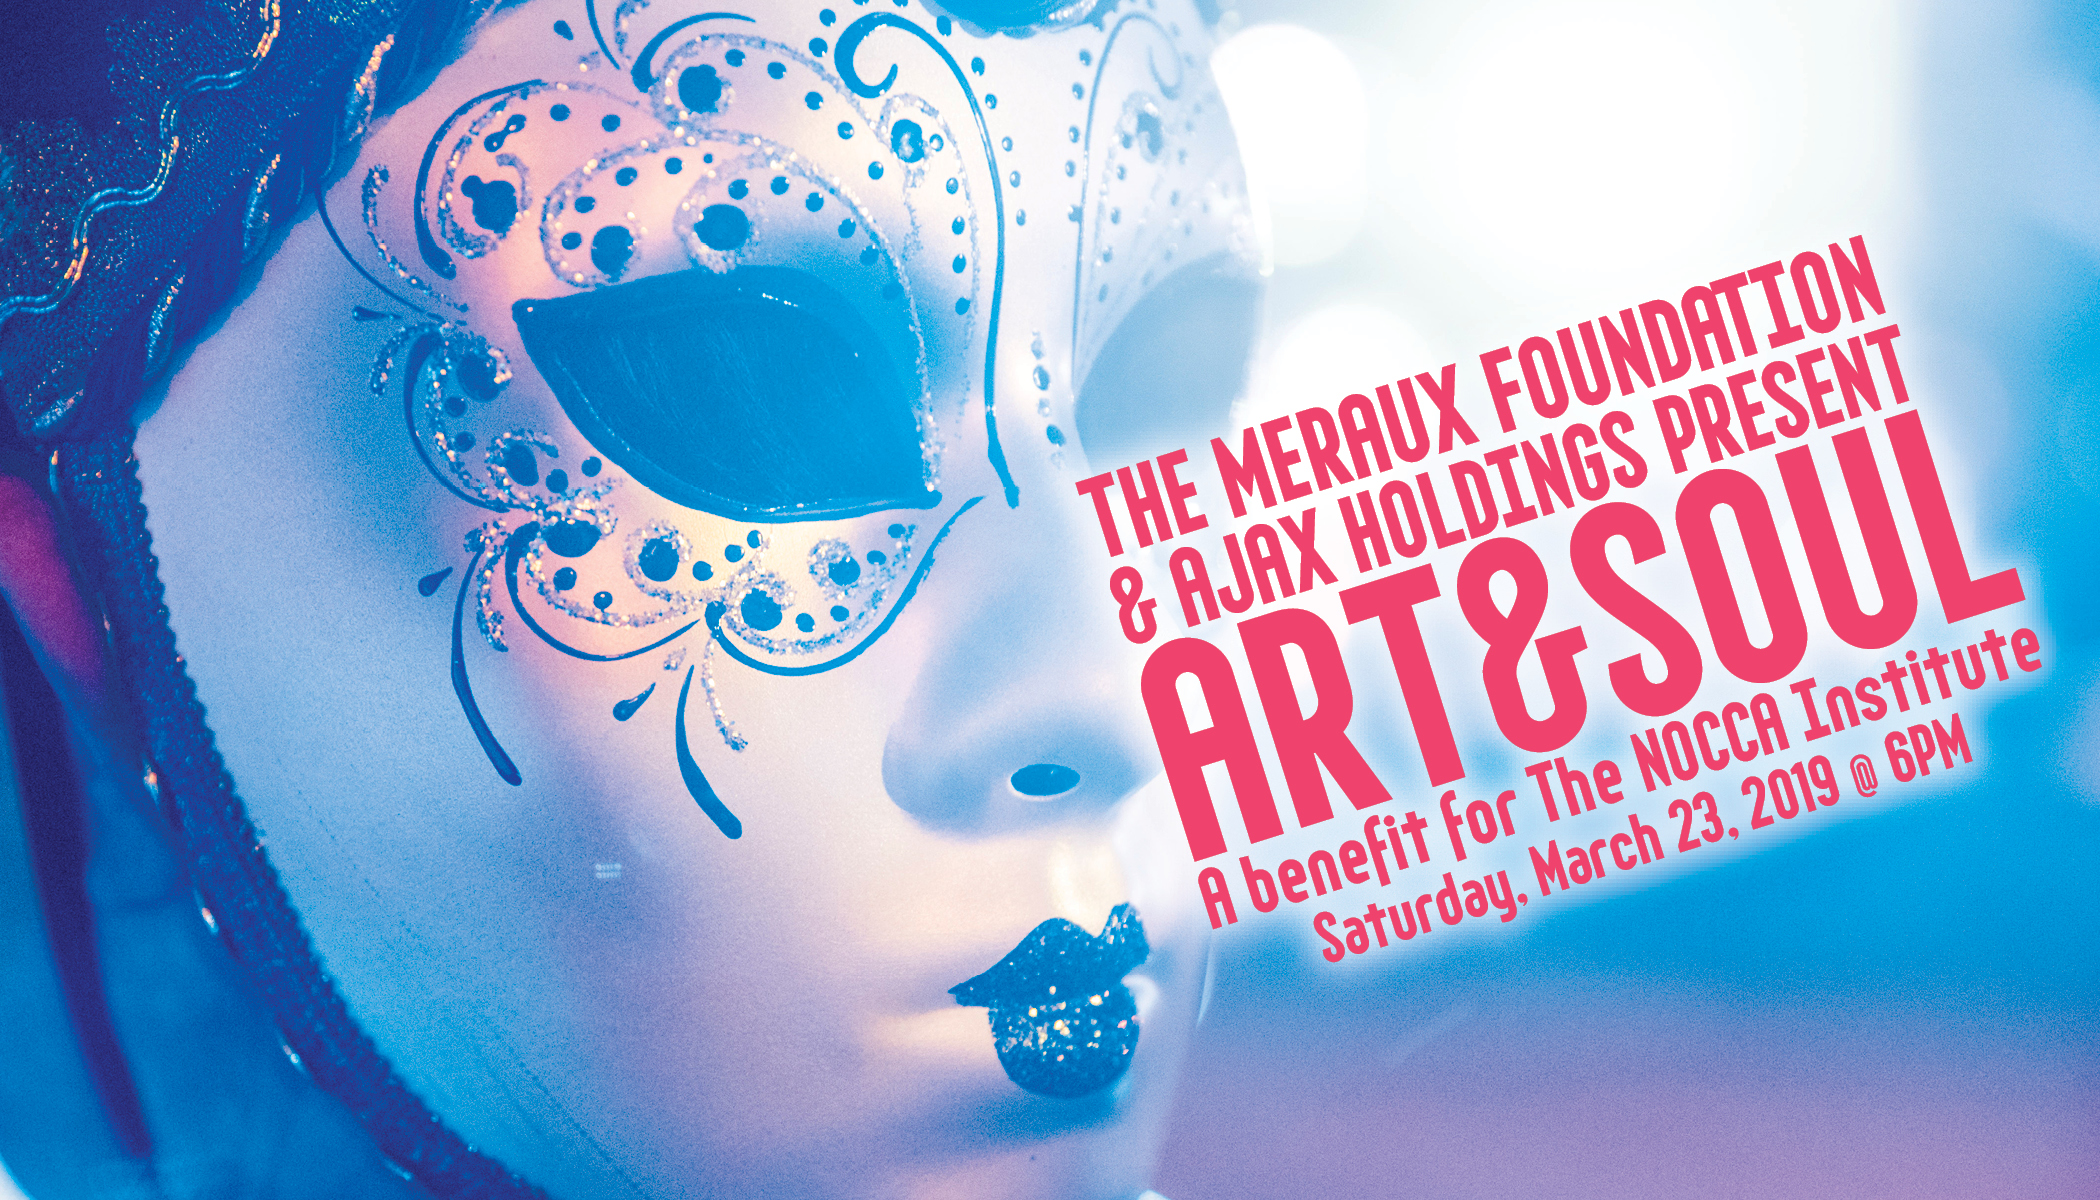 March 23: Join The NOCCA Institute for our annual ART&SOUL gala